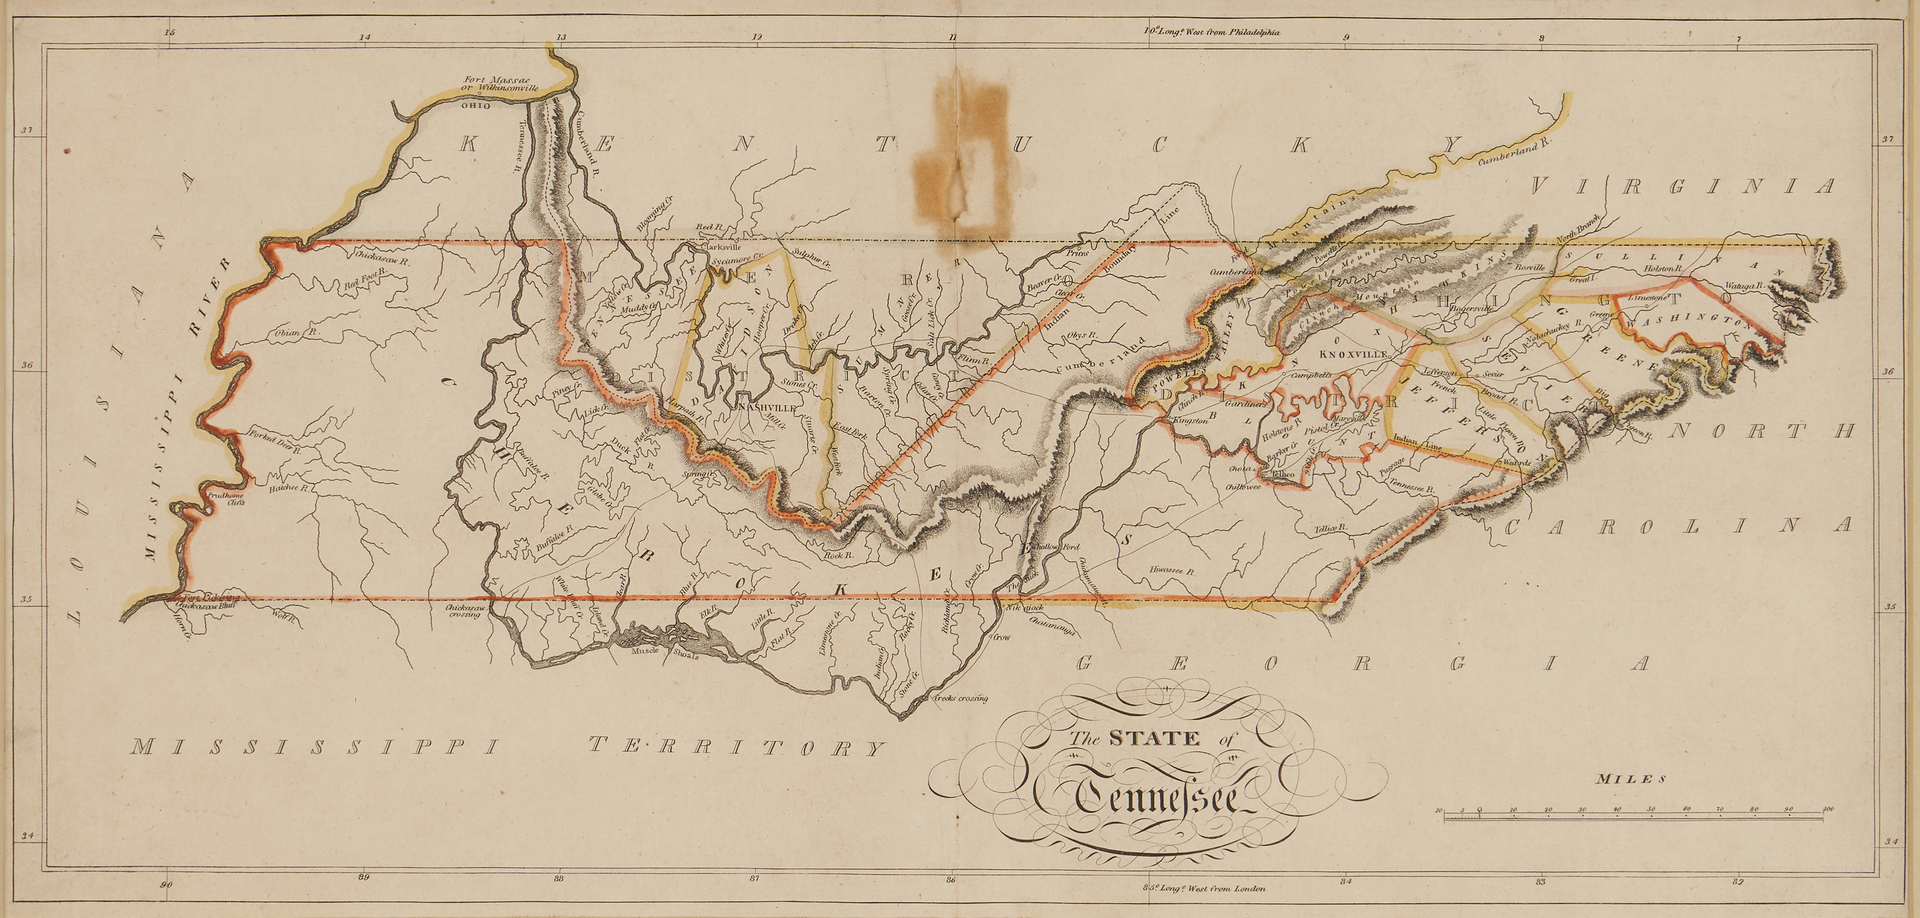 Lot 622: State of TN Map, M. Carey, 1814